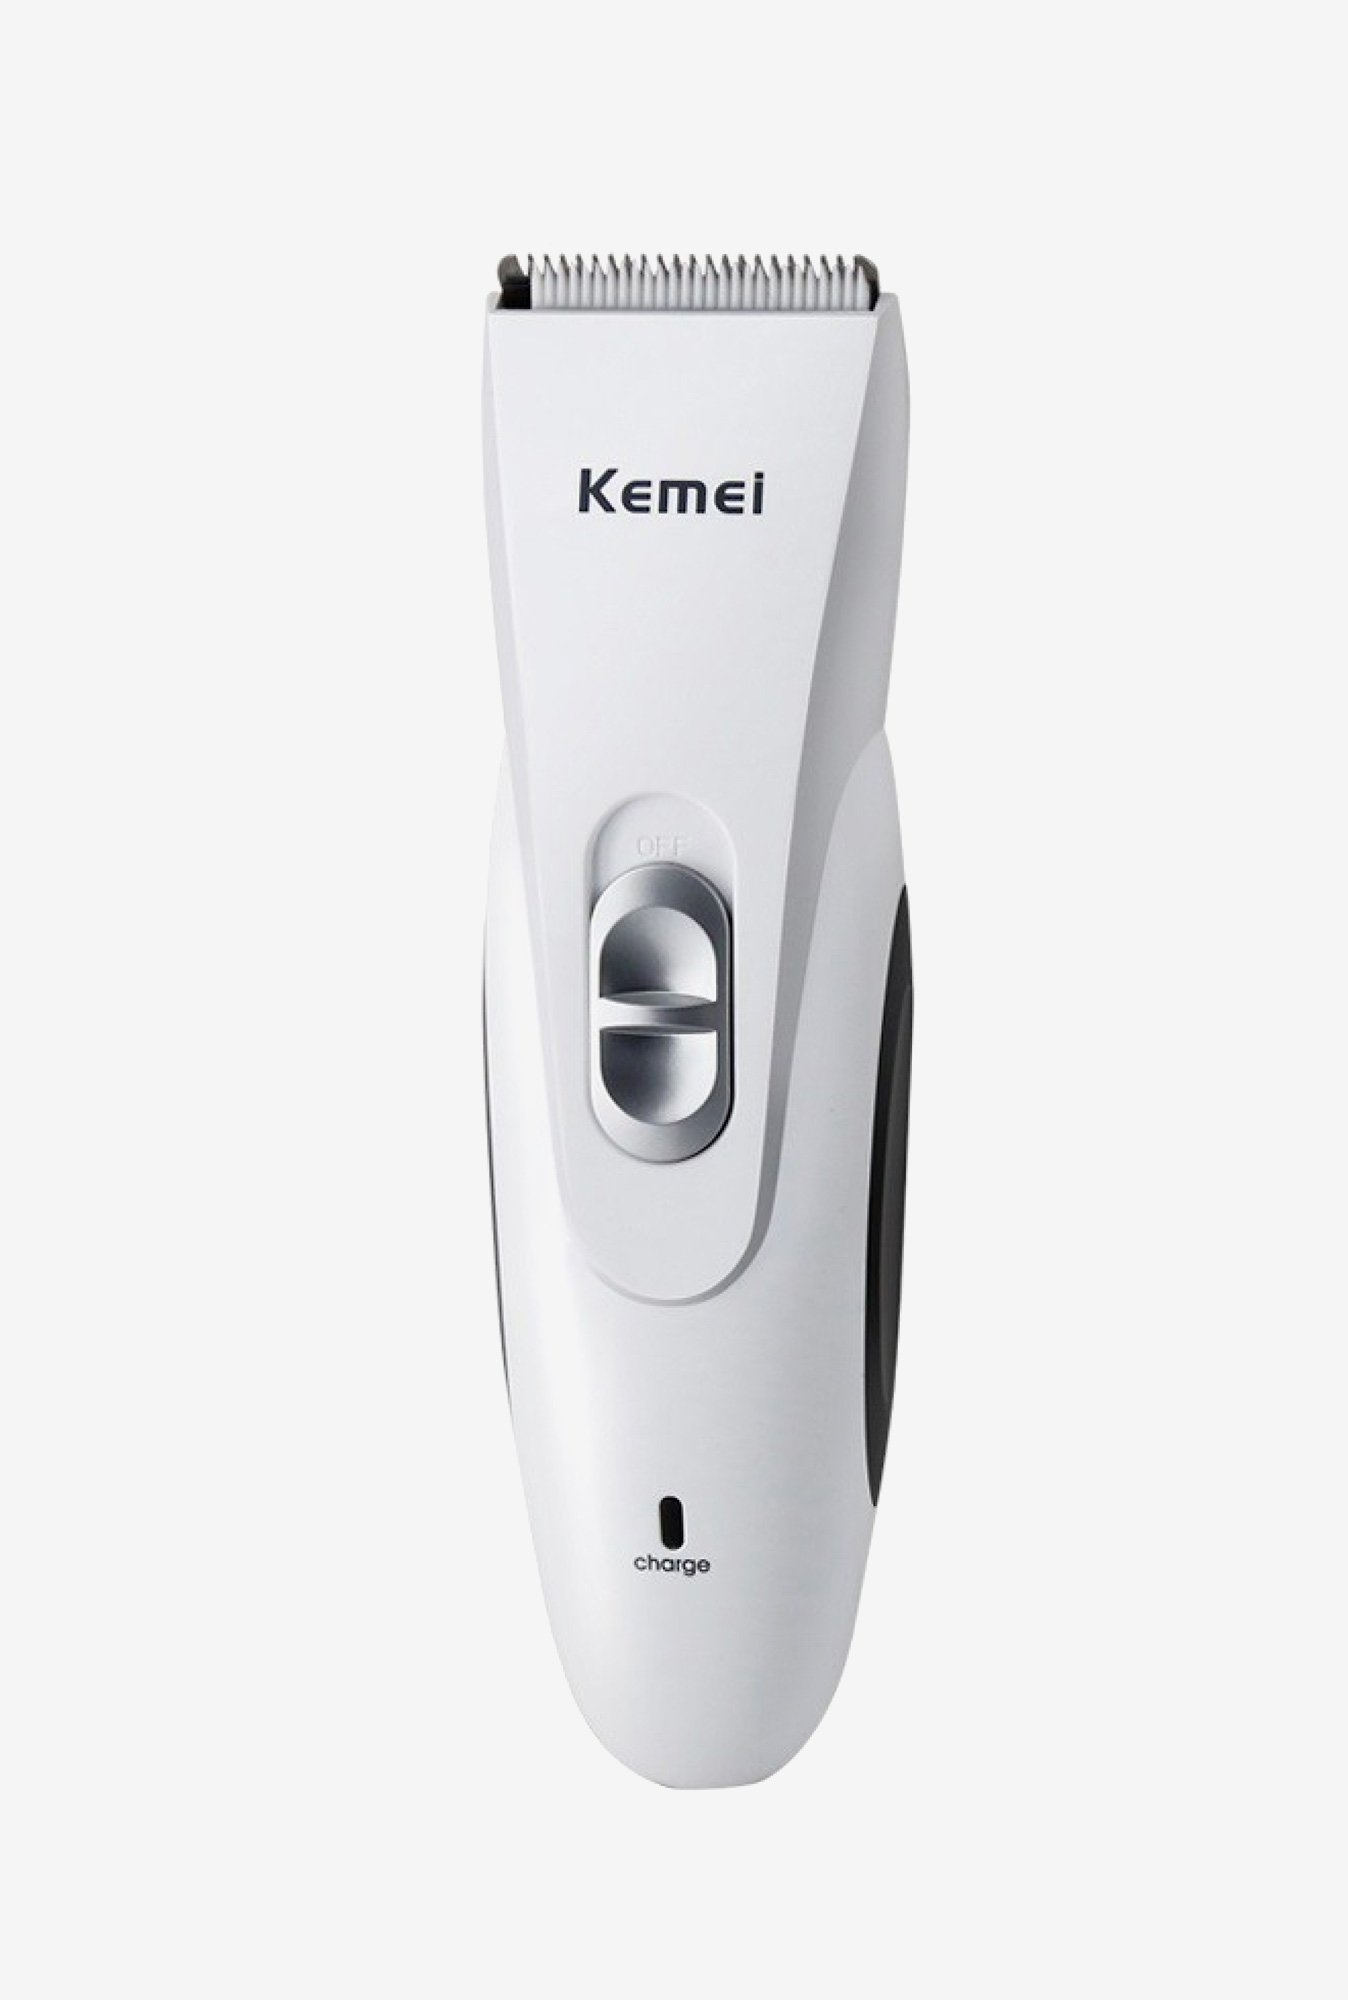 Kemei KM-970 Clipper Trimmer for Men (White & Black)